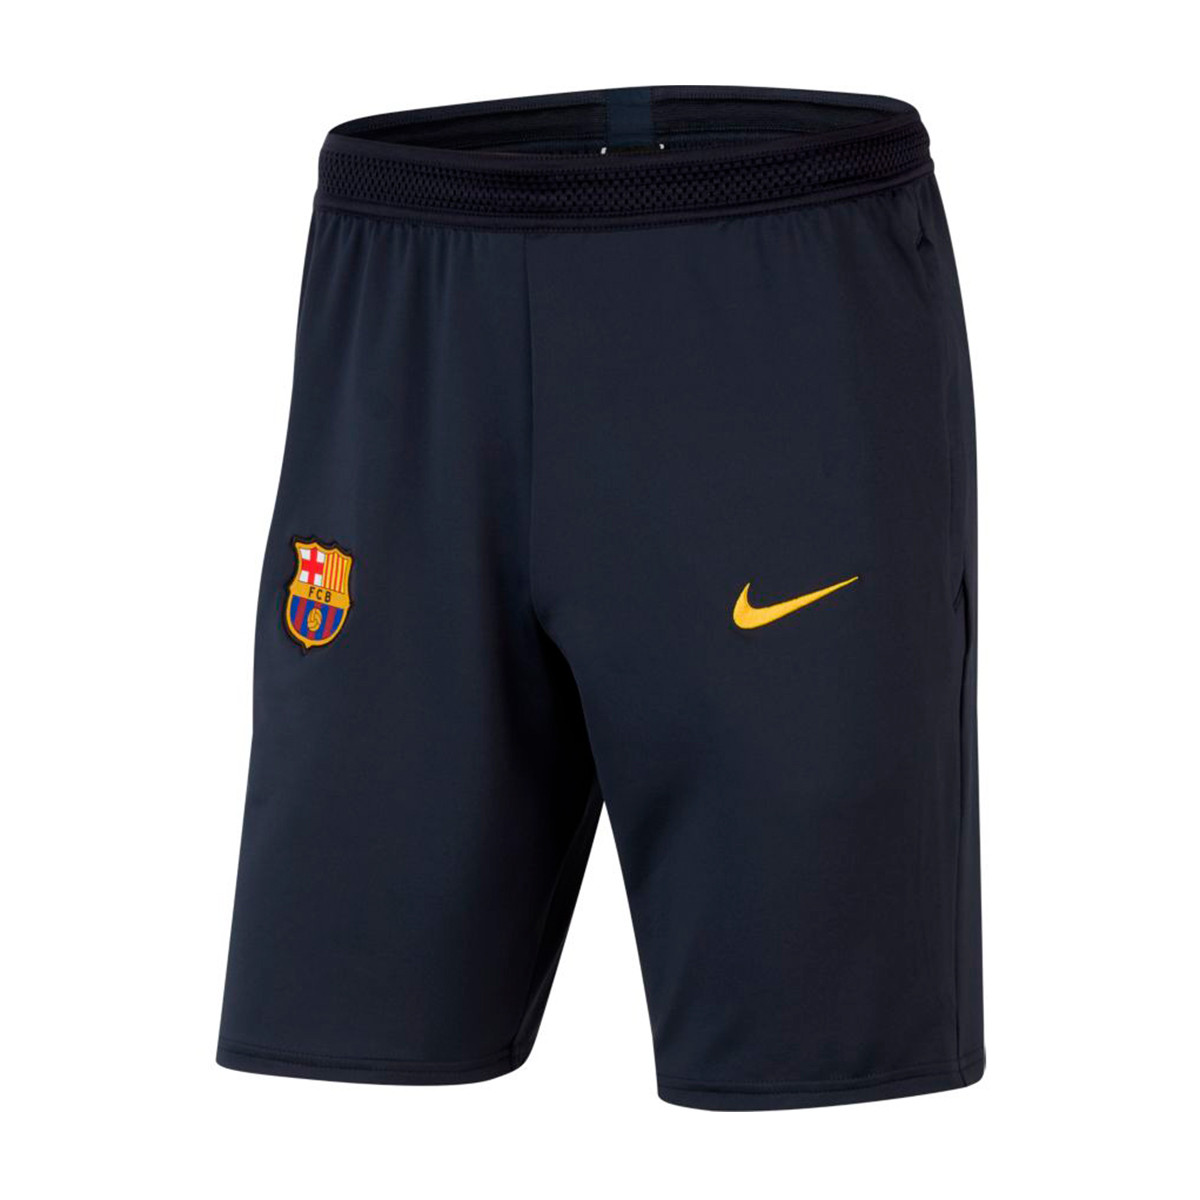 Quinto extraño Franco  Shorts Nike FC Barcelona 2020-2021 Dark obsidian - Football store Fútbol  Emotion